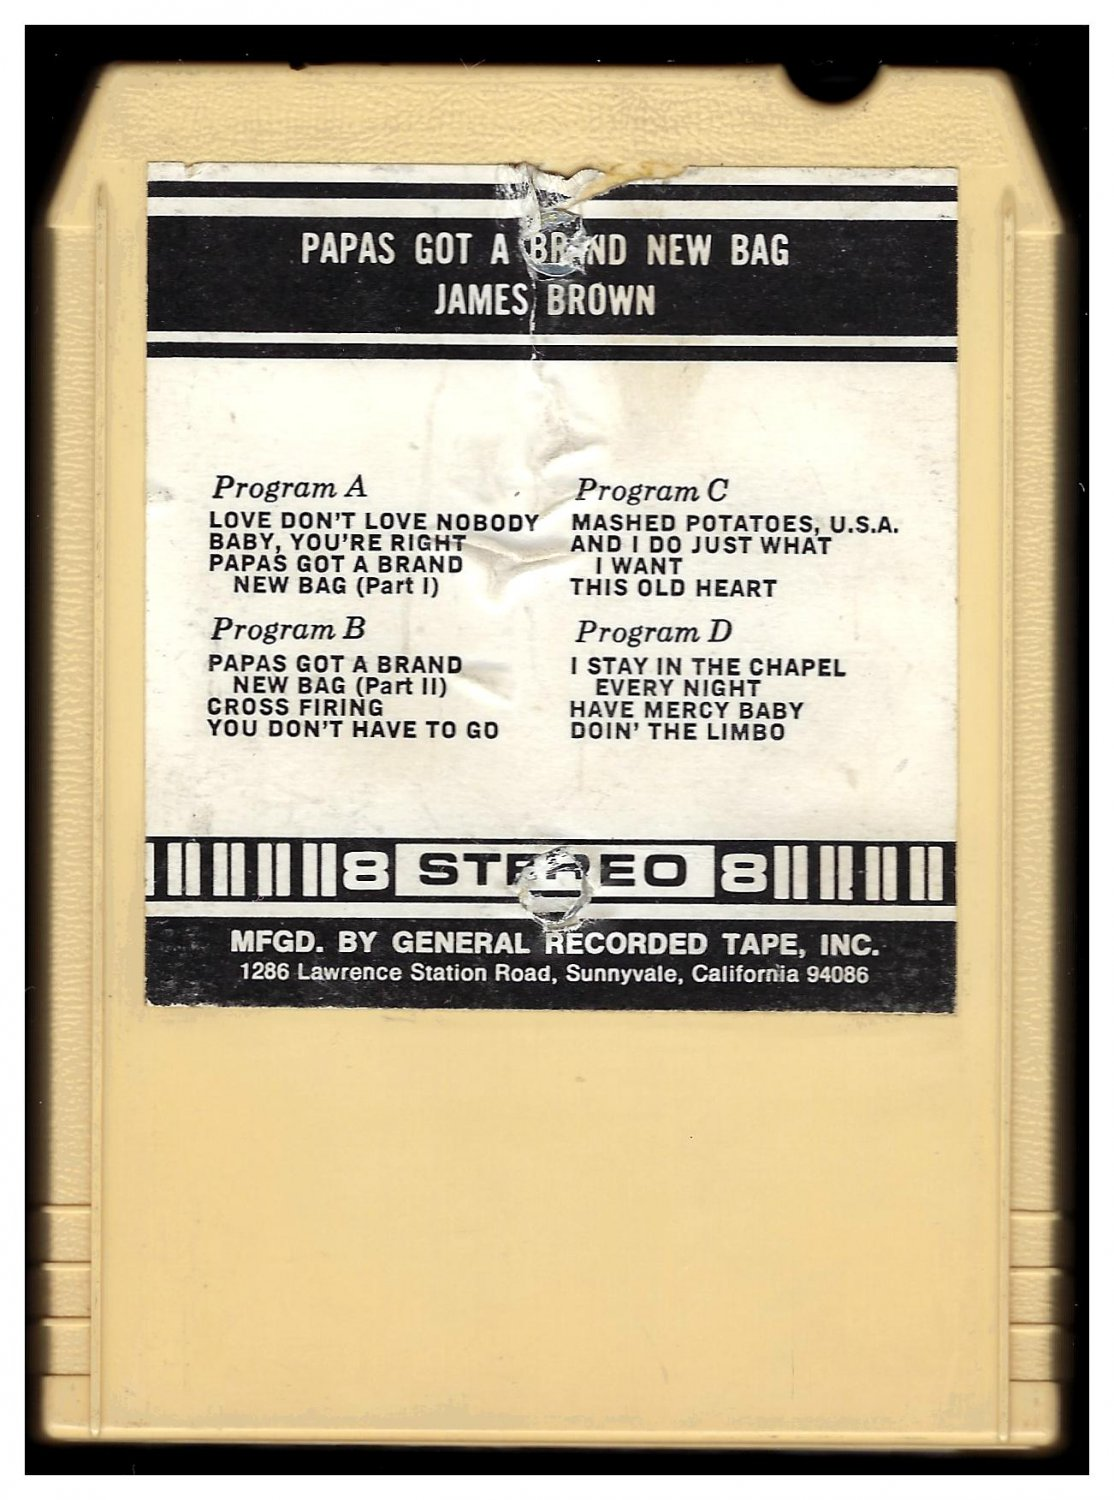 James Brown - Papa's Got A Brand New Bag 1965 GRT KING T2 8-TRACK TAPE